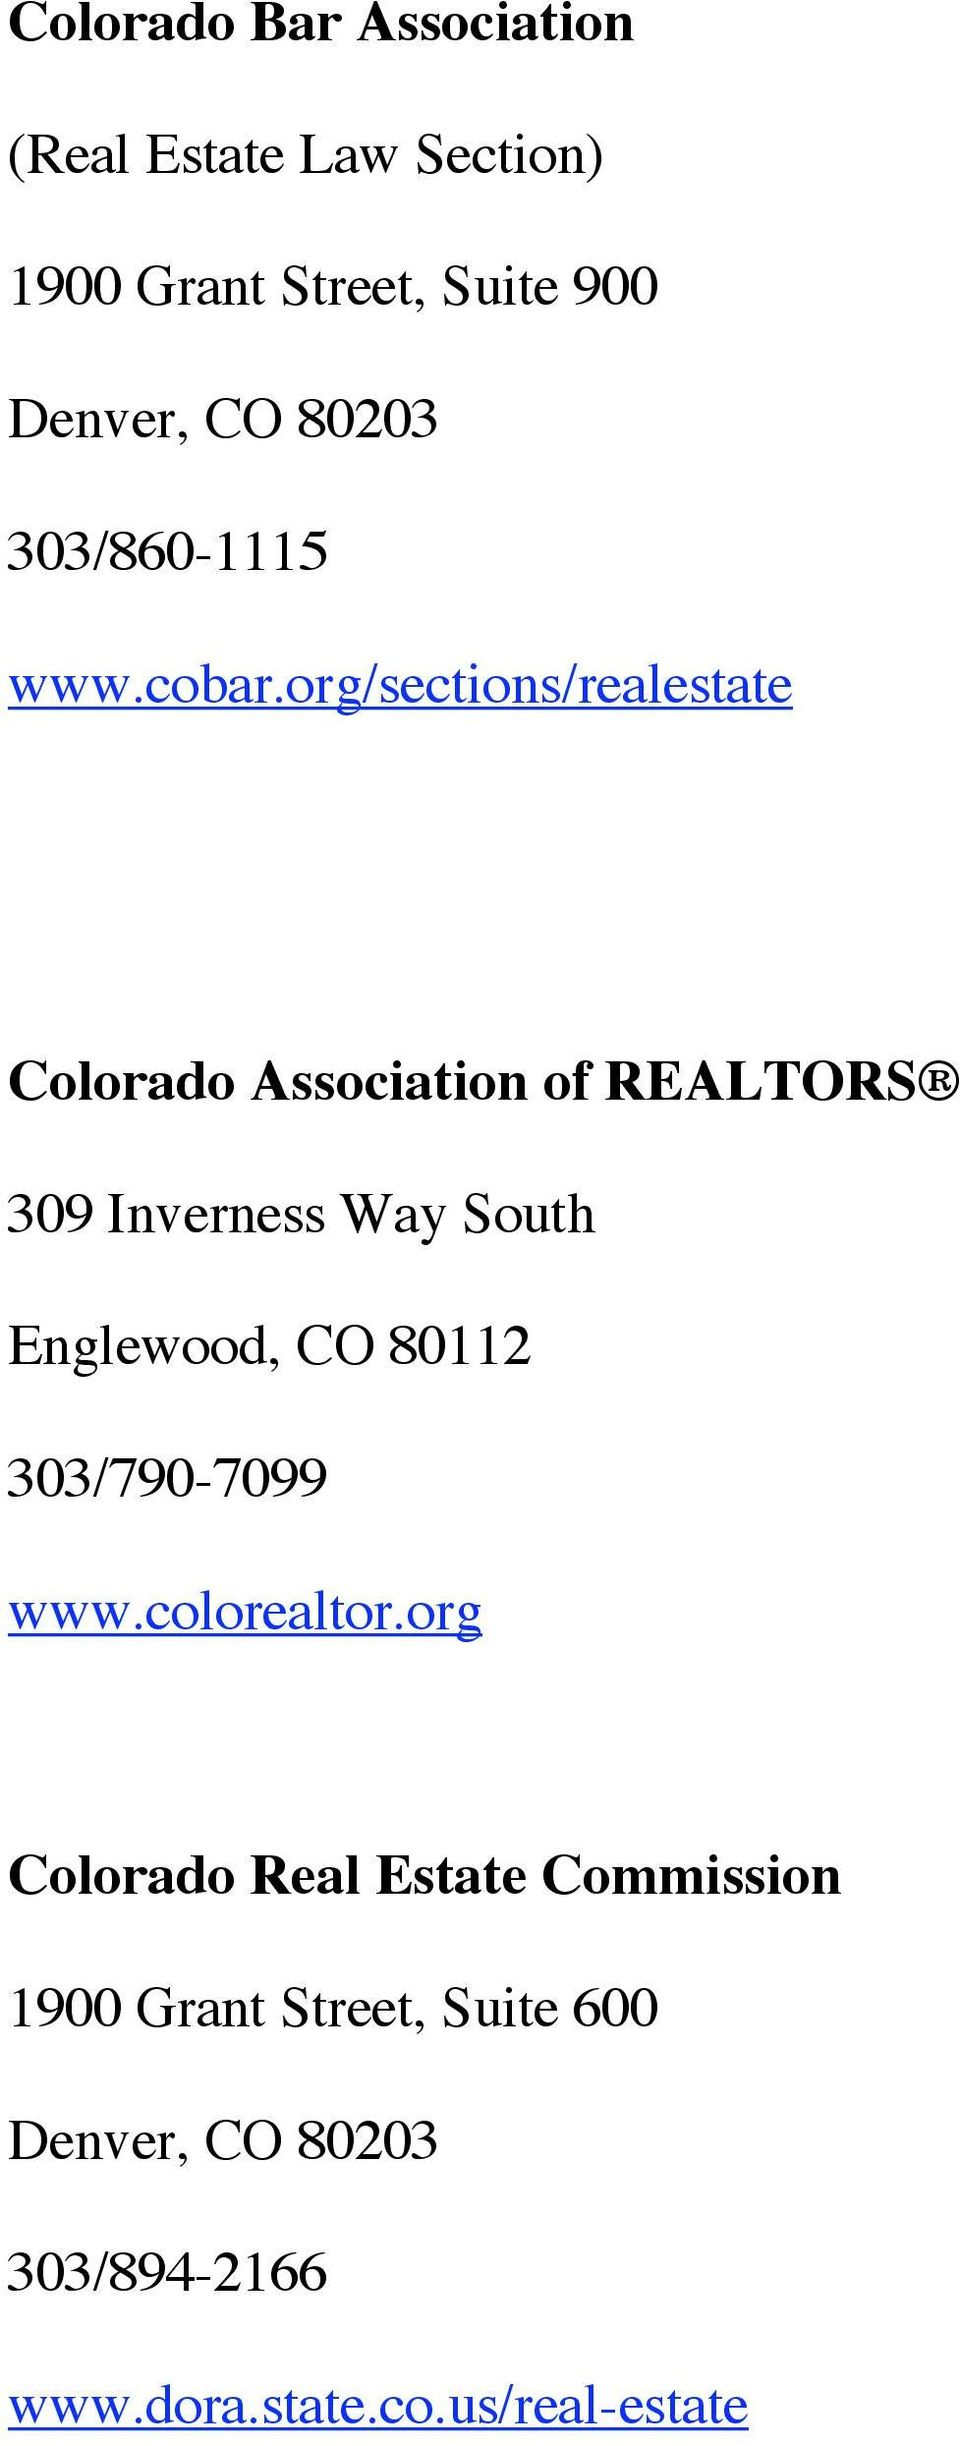 org/sections/realestate Colorado Association of REALTORS 309 Inverness Way South Englewood, CO